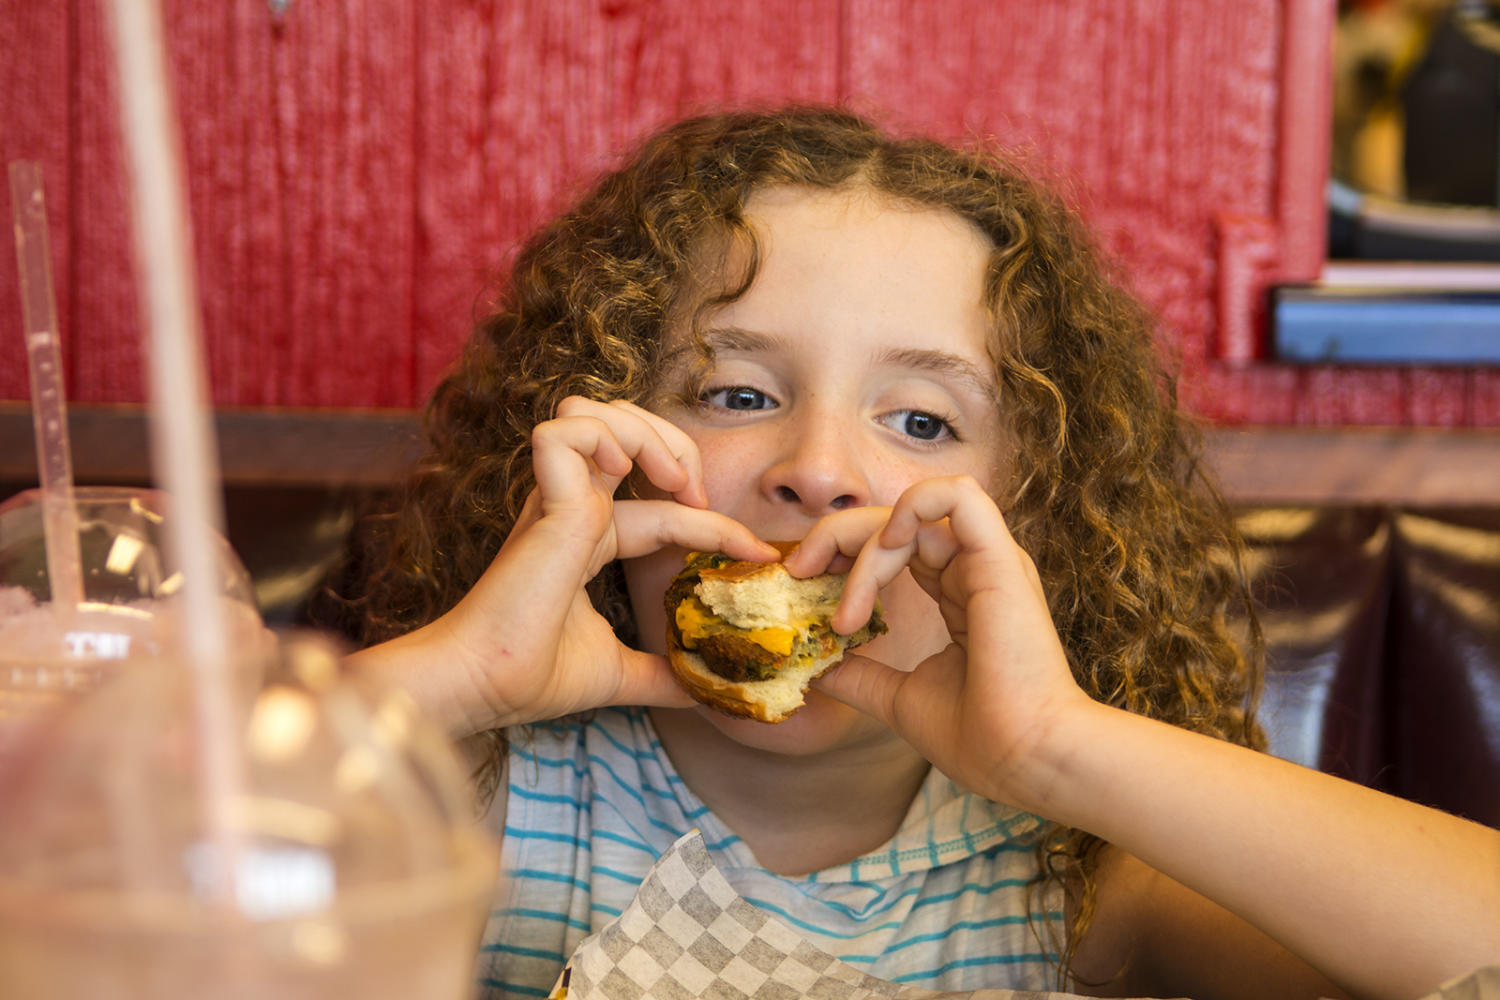 Megan Fakhoury, 7, of Carbondale, takes a bite out of a cheeseburger Saturday, Aug. 26, 2017, at Dale's Burgers in Carbondale. (Athena Chrysanthou | @Chrysant1Athena)